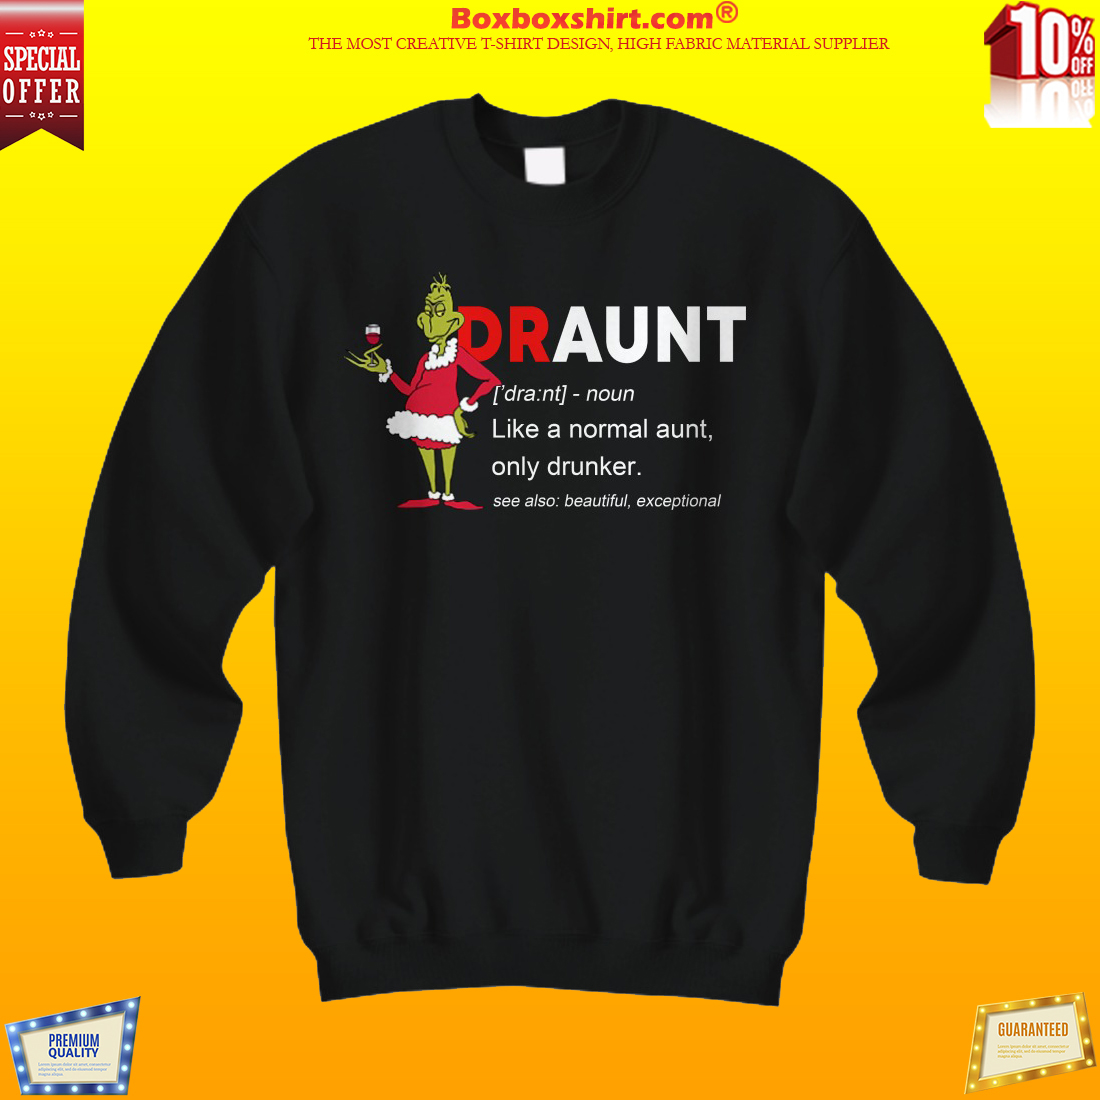 Draunt meaning like normal aunt only drunker shirt